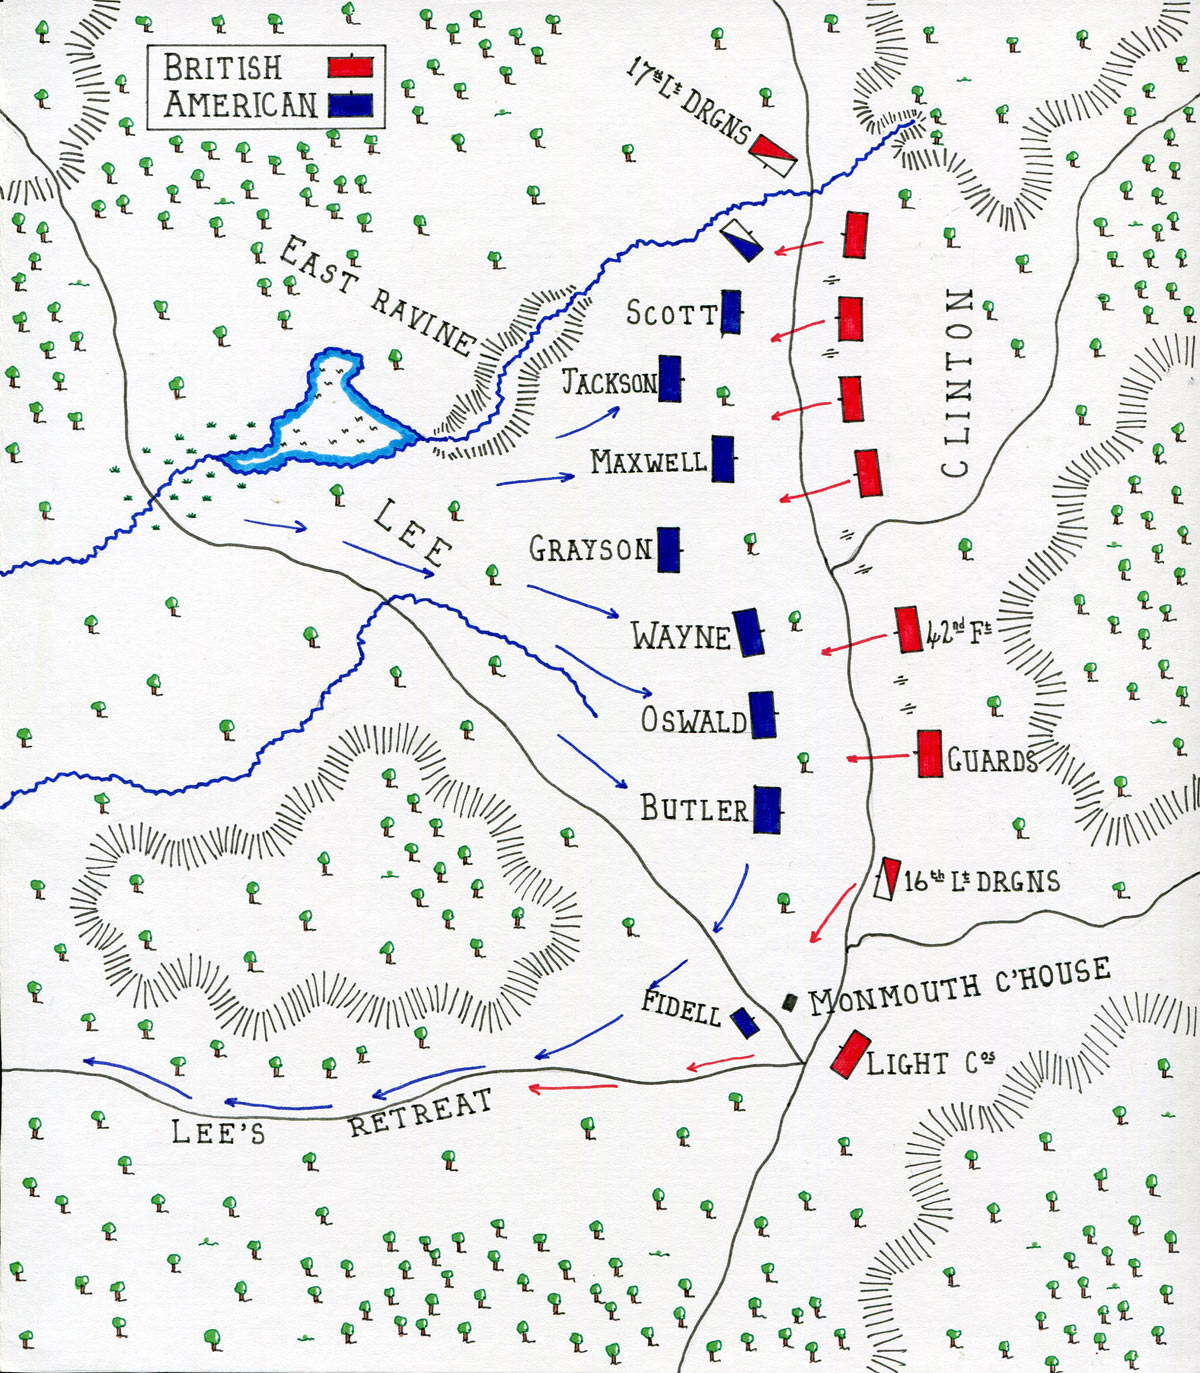 Map of Lee's advance at the Battle of Monmouth on 28th June 1778 in the American Revolutionary War: map by John Fawkes